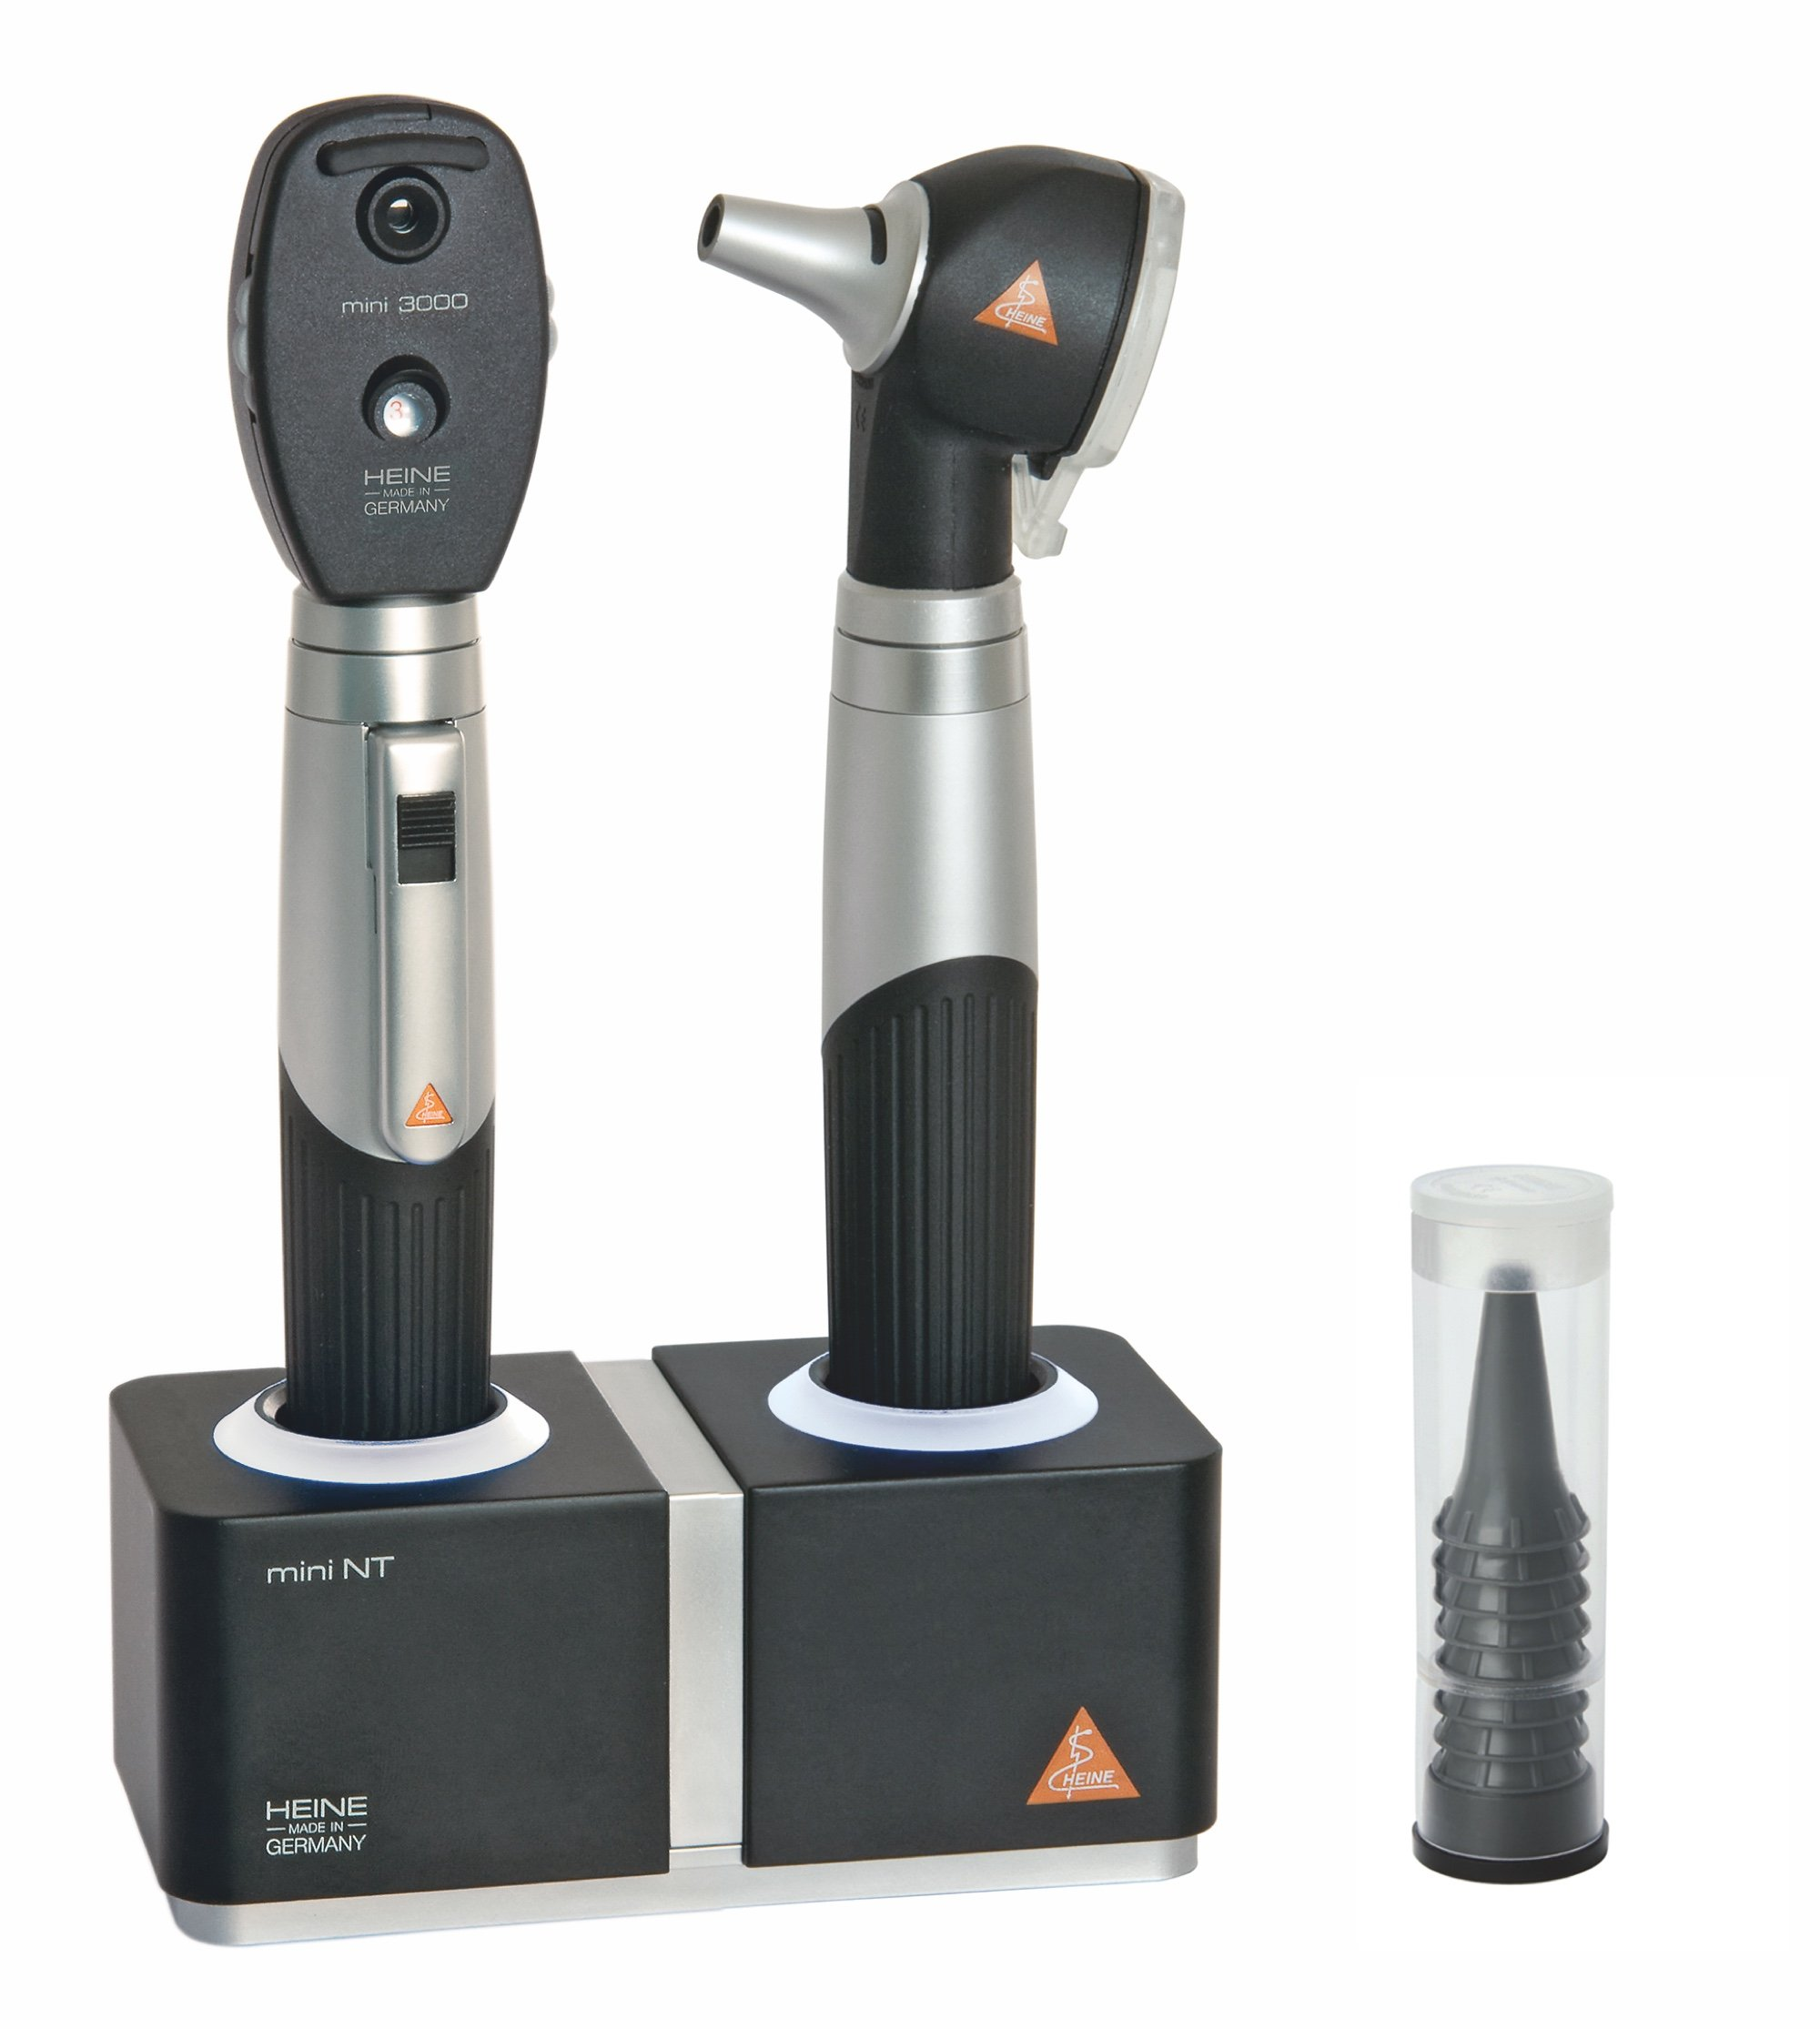 HEINE mini3000 F.O Otoscope/Ophthalmoscope Set with MiniNT Charger